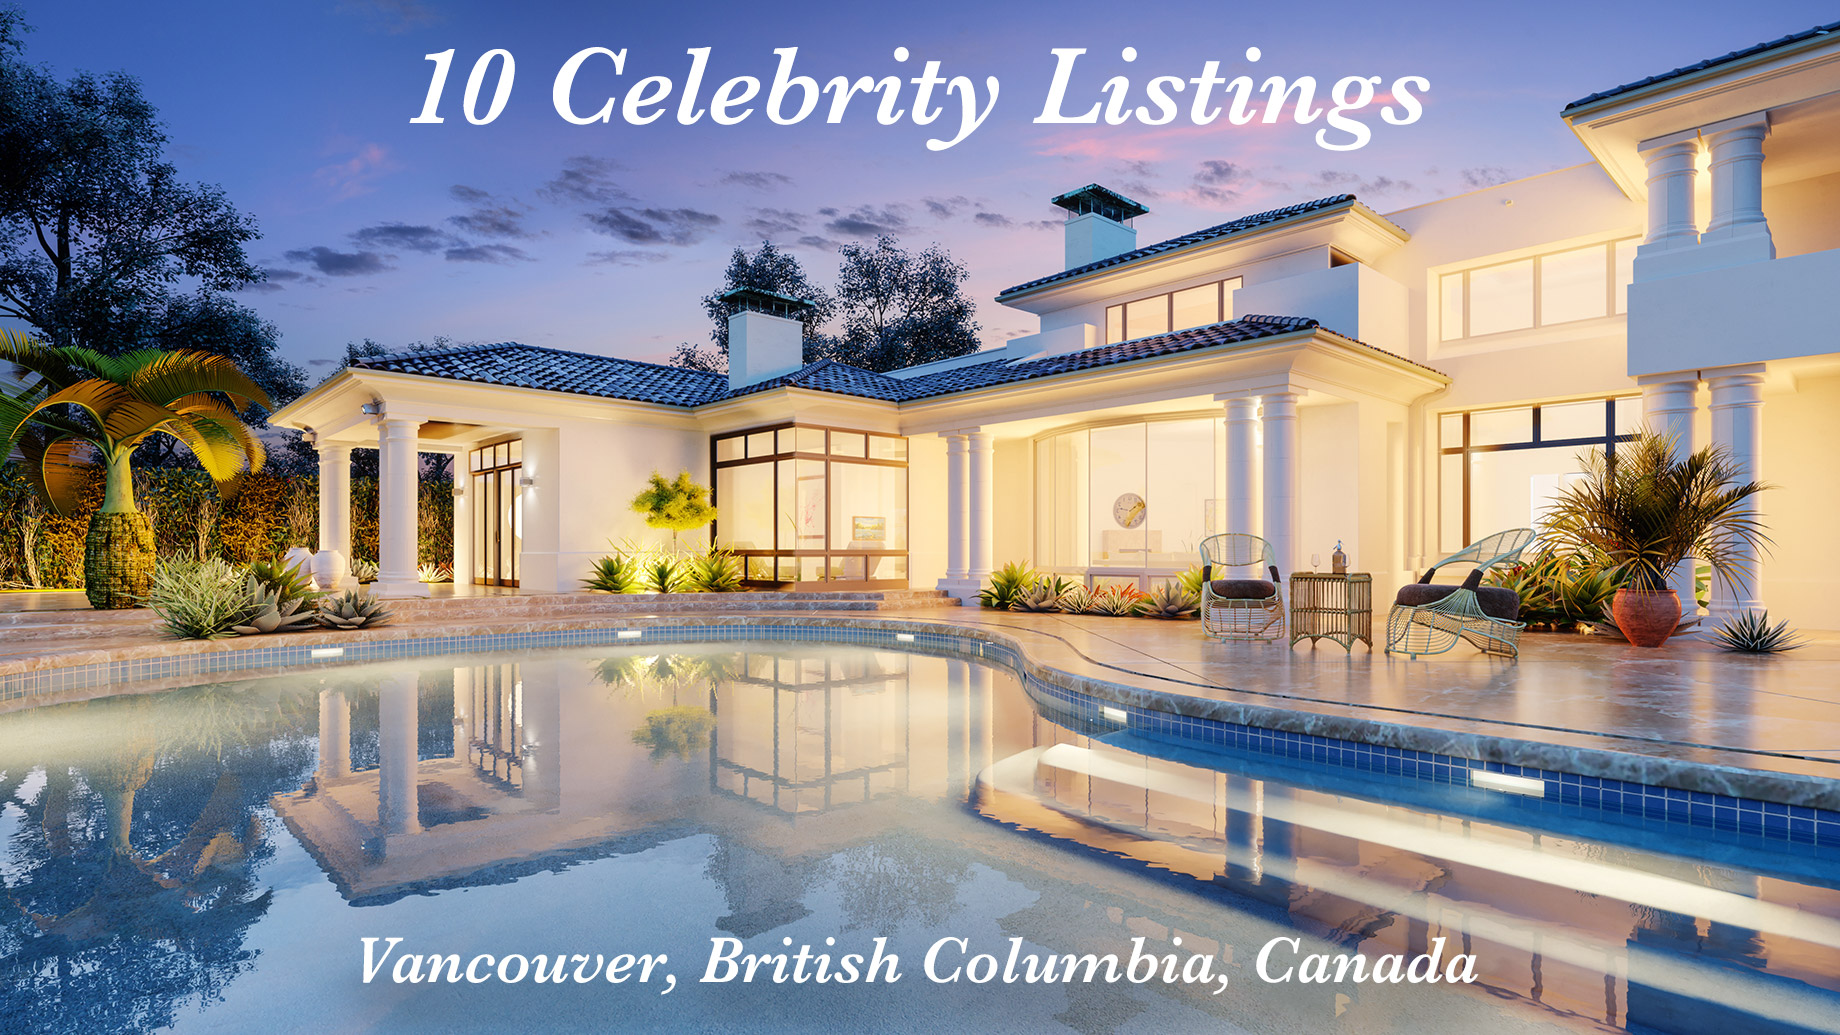 10 Celebrity Listings in Vancouver, British Columbia, Canada